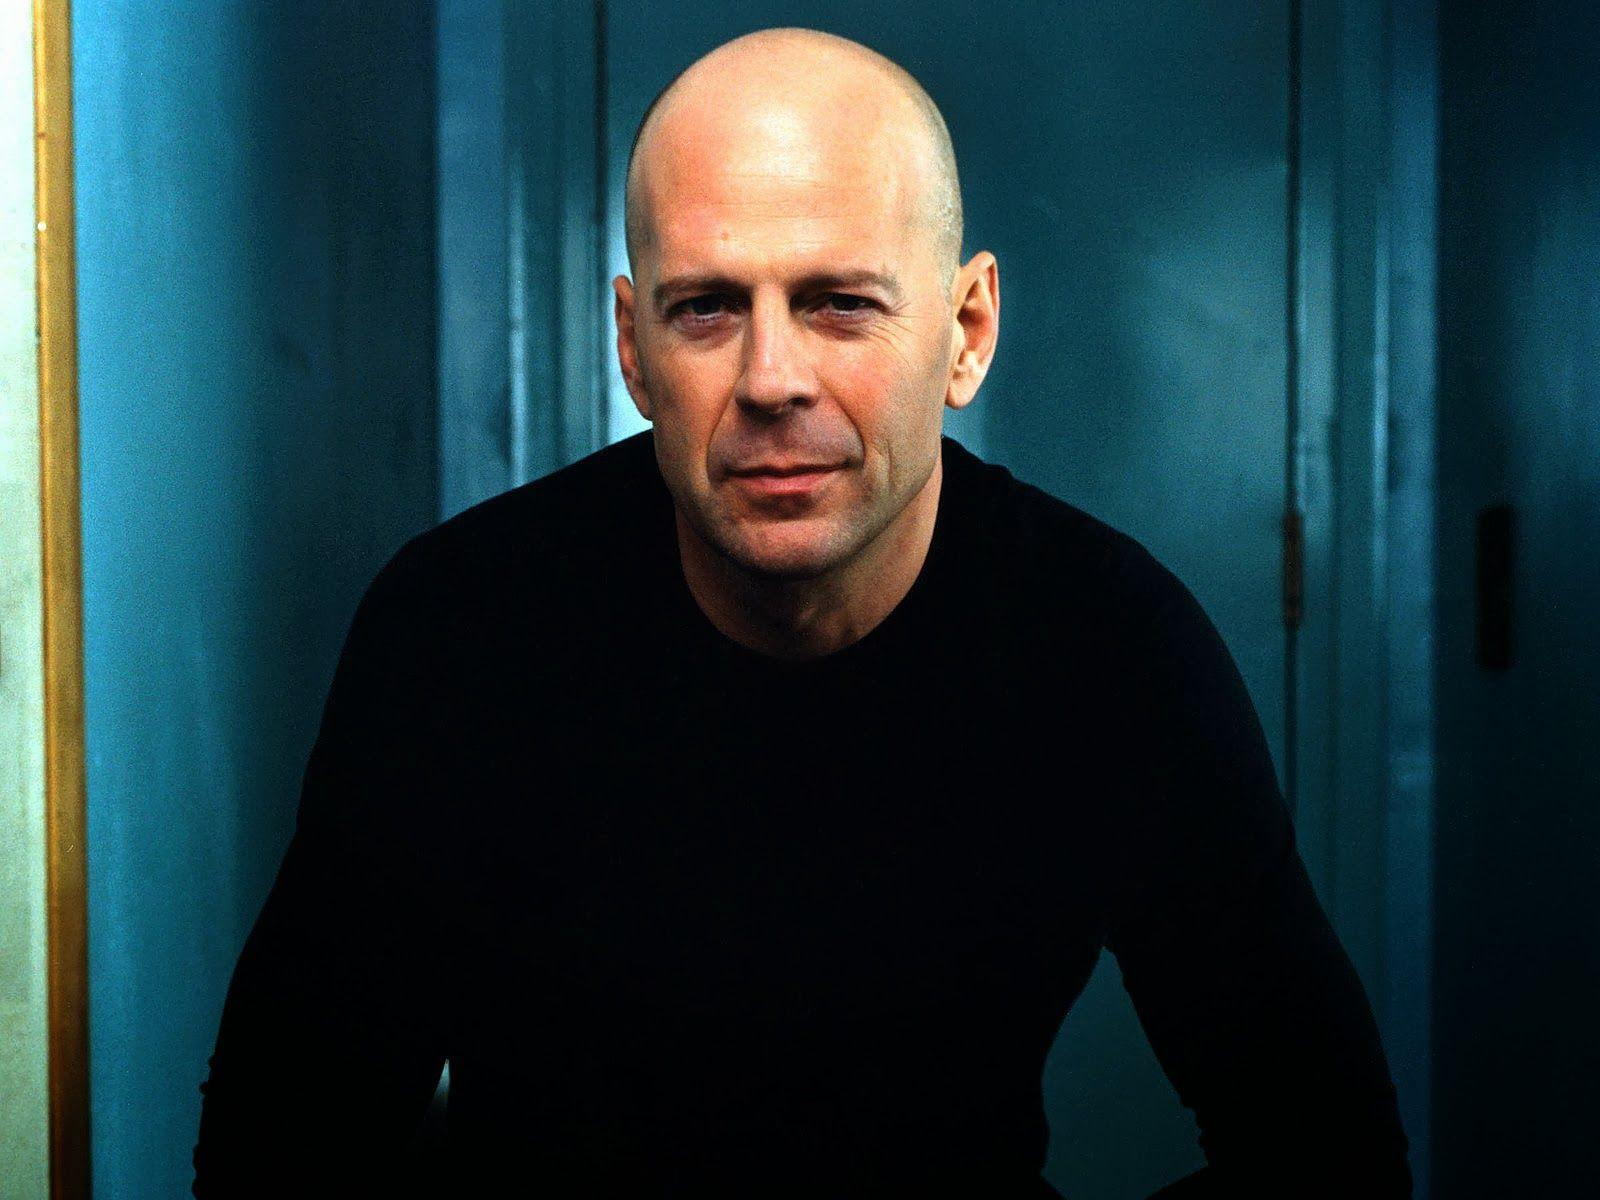 Bruce Willis Wallpapers - Desktop Wallpapers